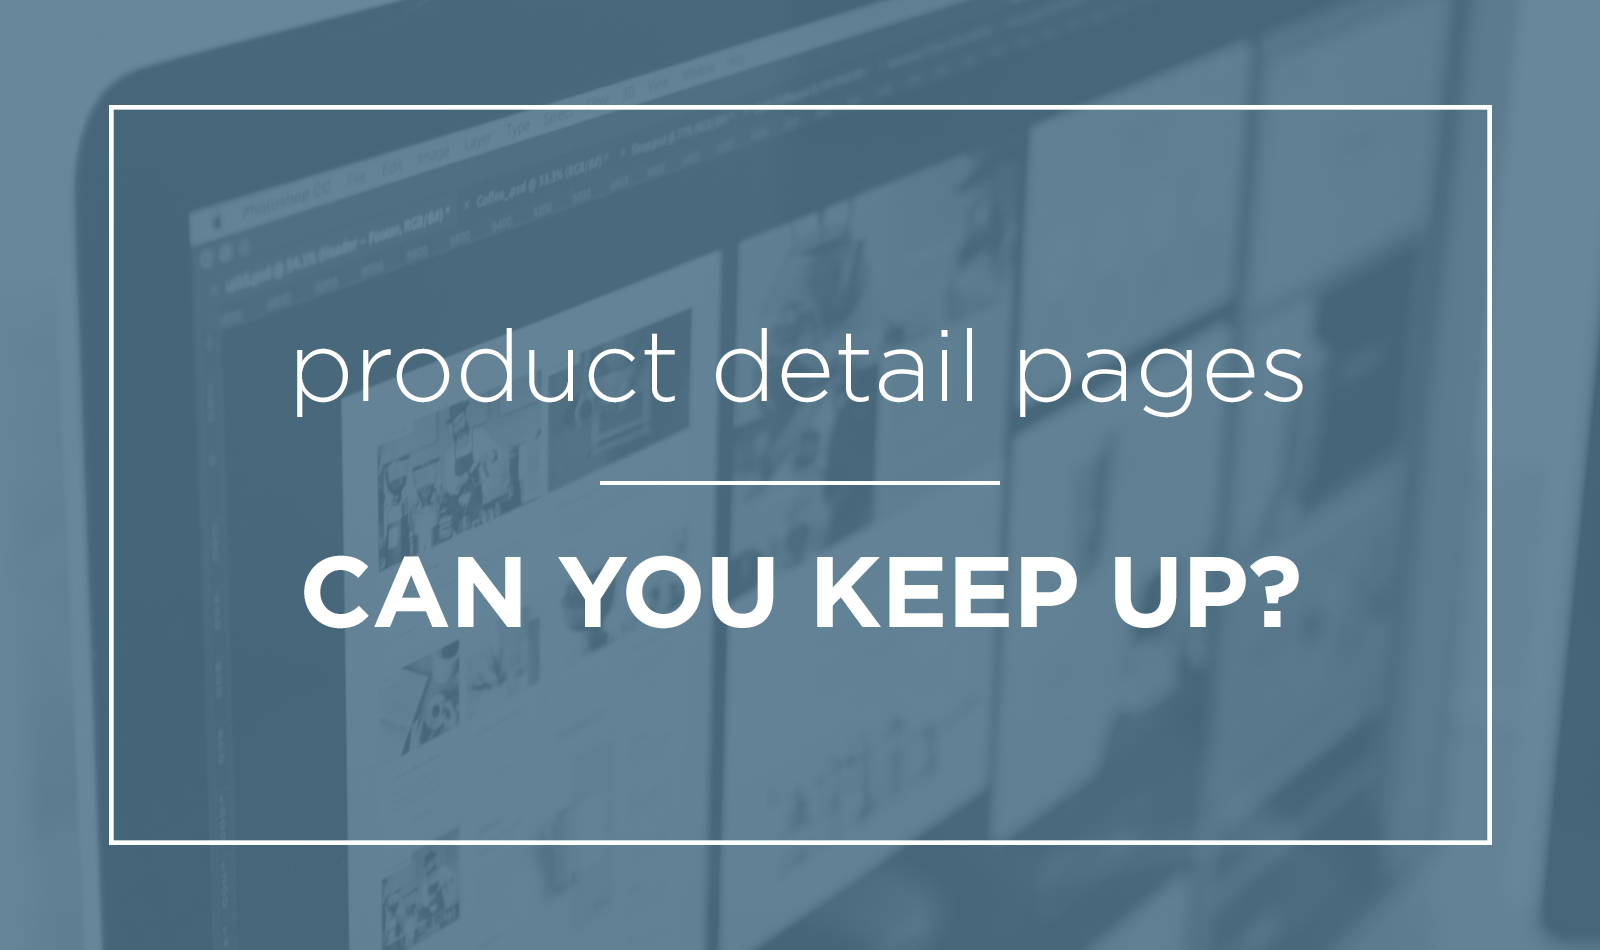 product-detail-page-layout-can-you-keep-up